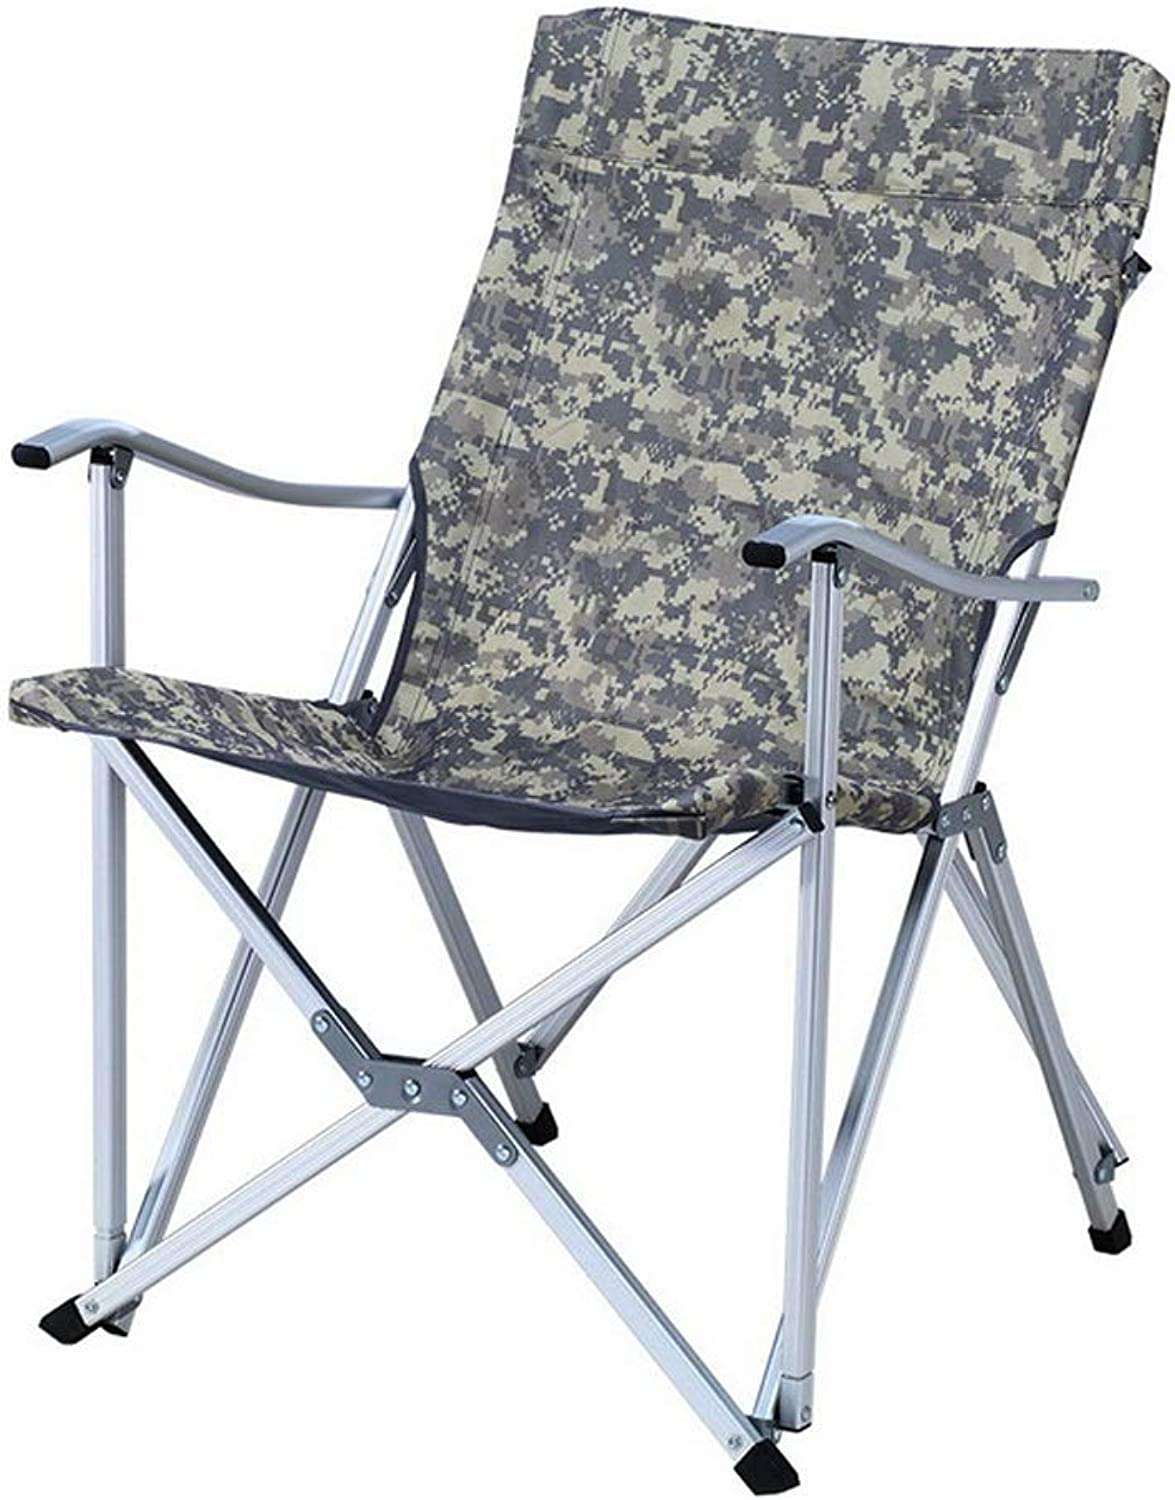 MYXMY Ultralight Portable Folding Camping Backpacking Chair Compact & Heavy Duty Outdoor, Camping, BBQ, Beach, Travel, Picnic